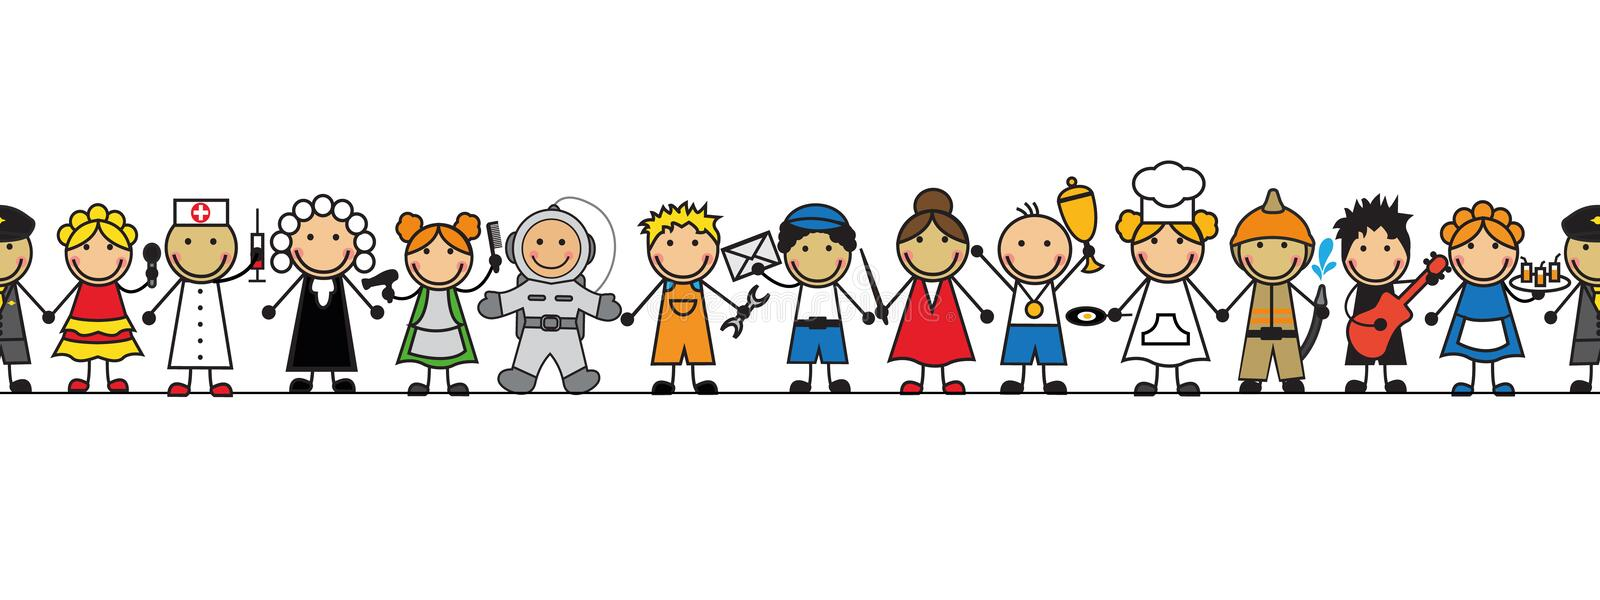 Seamless kids in costumes professions stand in a row royalty free illustration